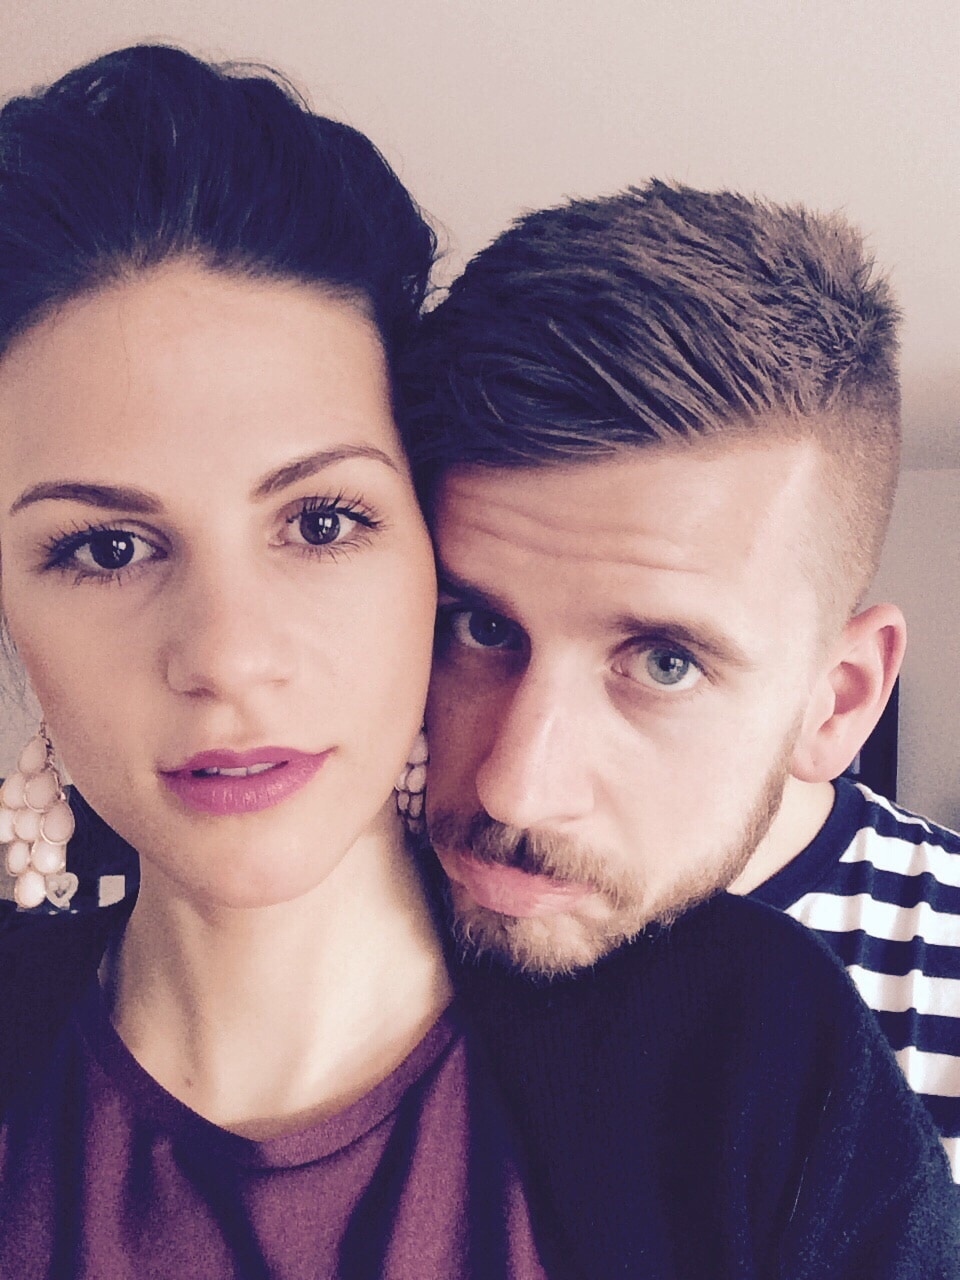 Christin & Mats From Biel/Bienne, Switzerland